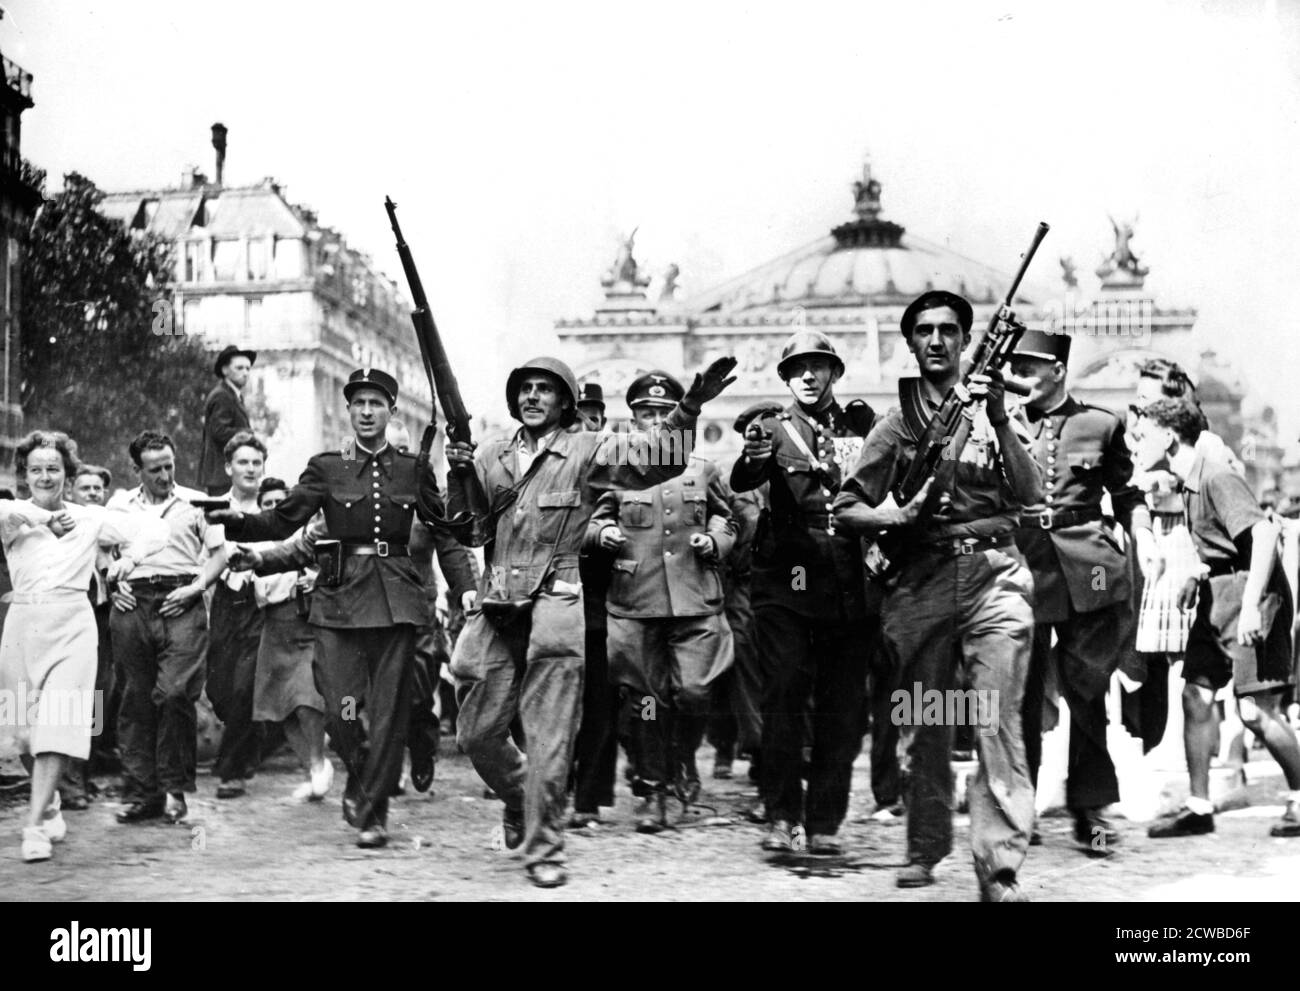 Liberation of Paris, 25 August 1944. Gendarmes, soldiers and Resistance fighters escorting German prisoners through crowds of jubilant civilians in front of the Opera. The photographer is unknown. Stock Photo